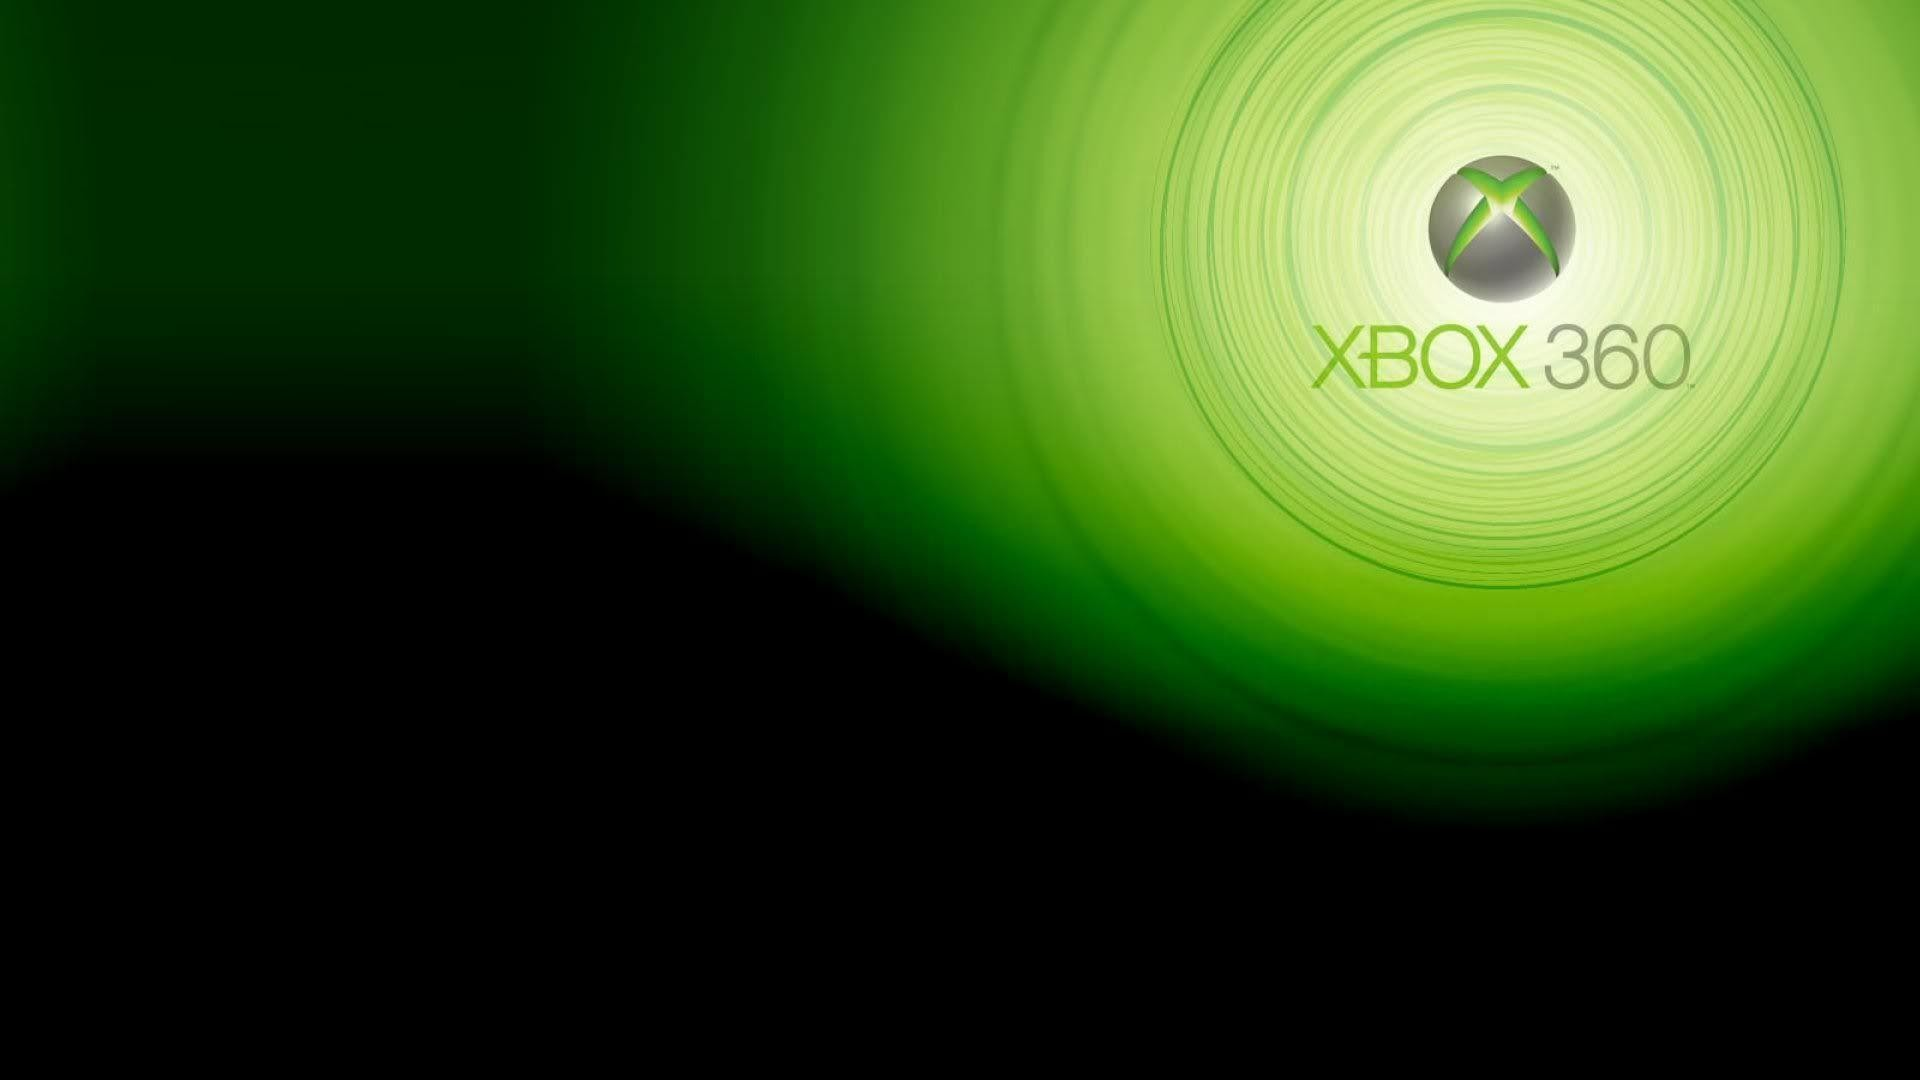 Cool xbox backgrounds 69 images - Xbox one wallpaper 1920x1080 ...